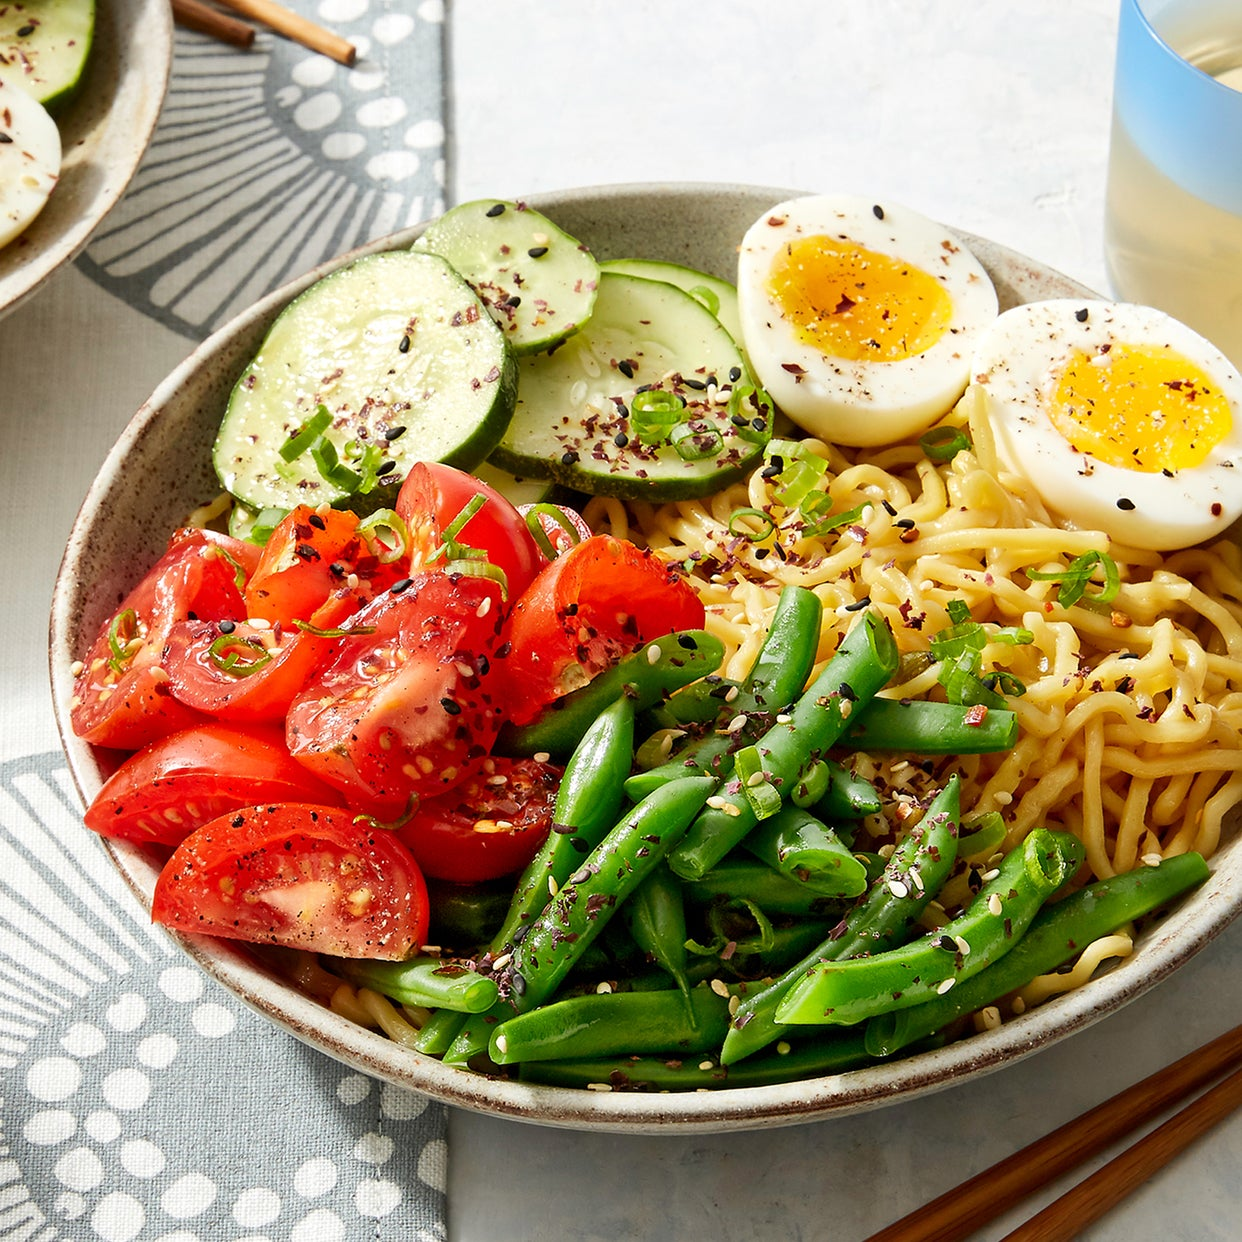 Chilled Hiyashi Chuka Ramen with Heritage Tomatoes, Green Beans, & Soft-Boiled Eggs